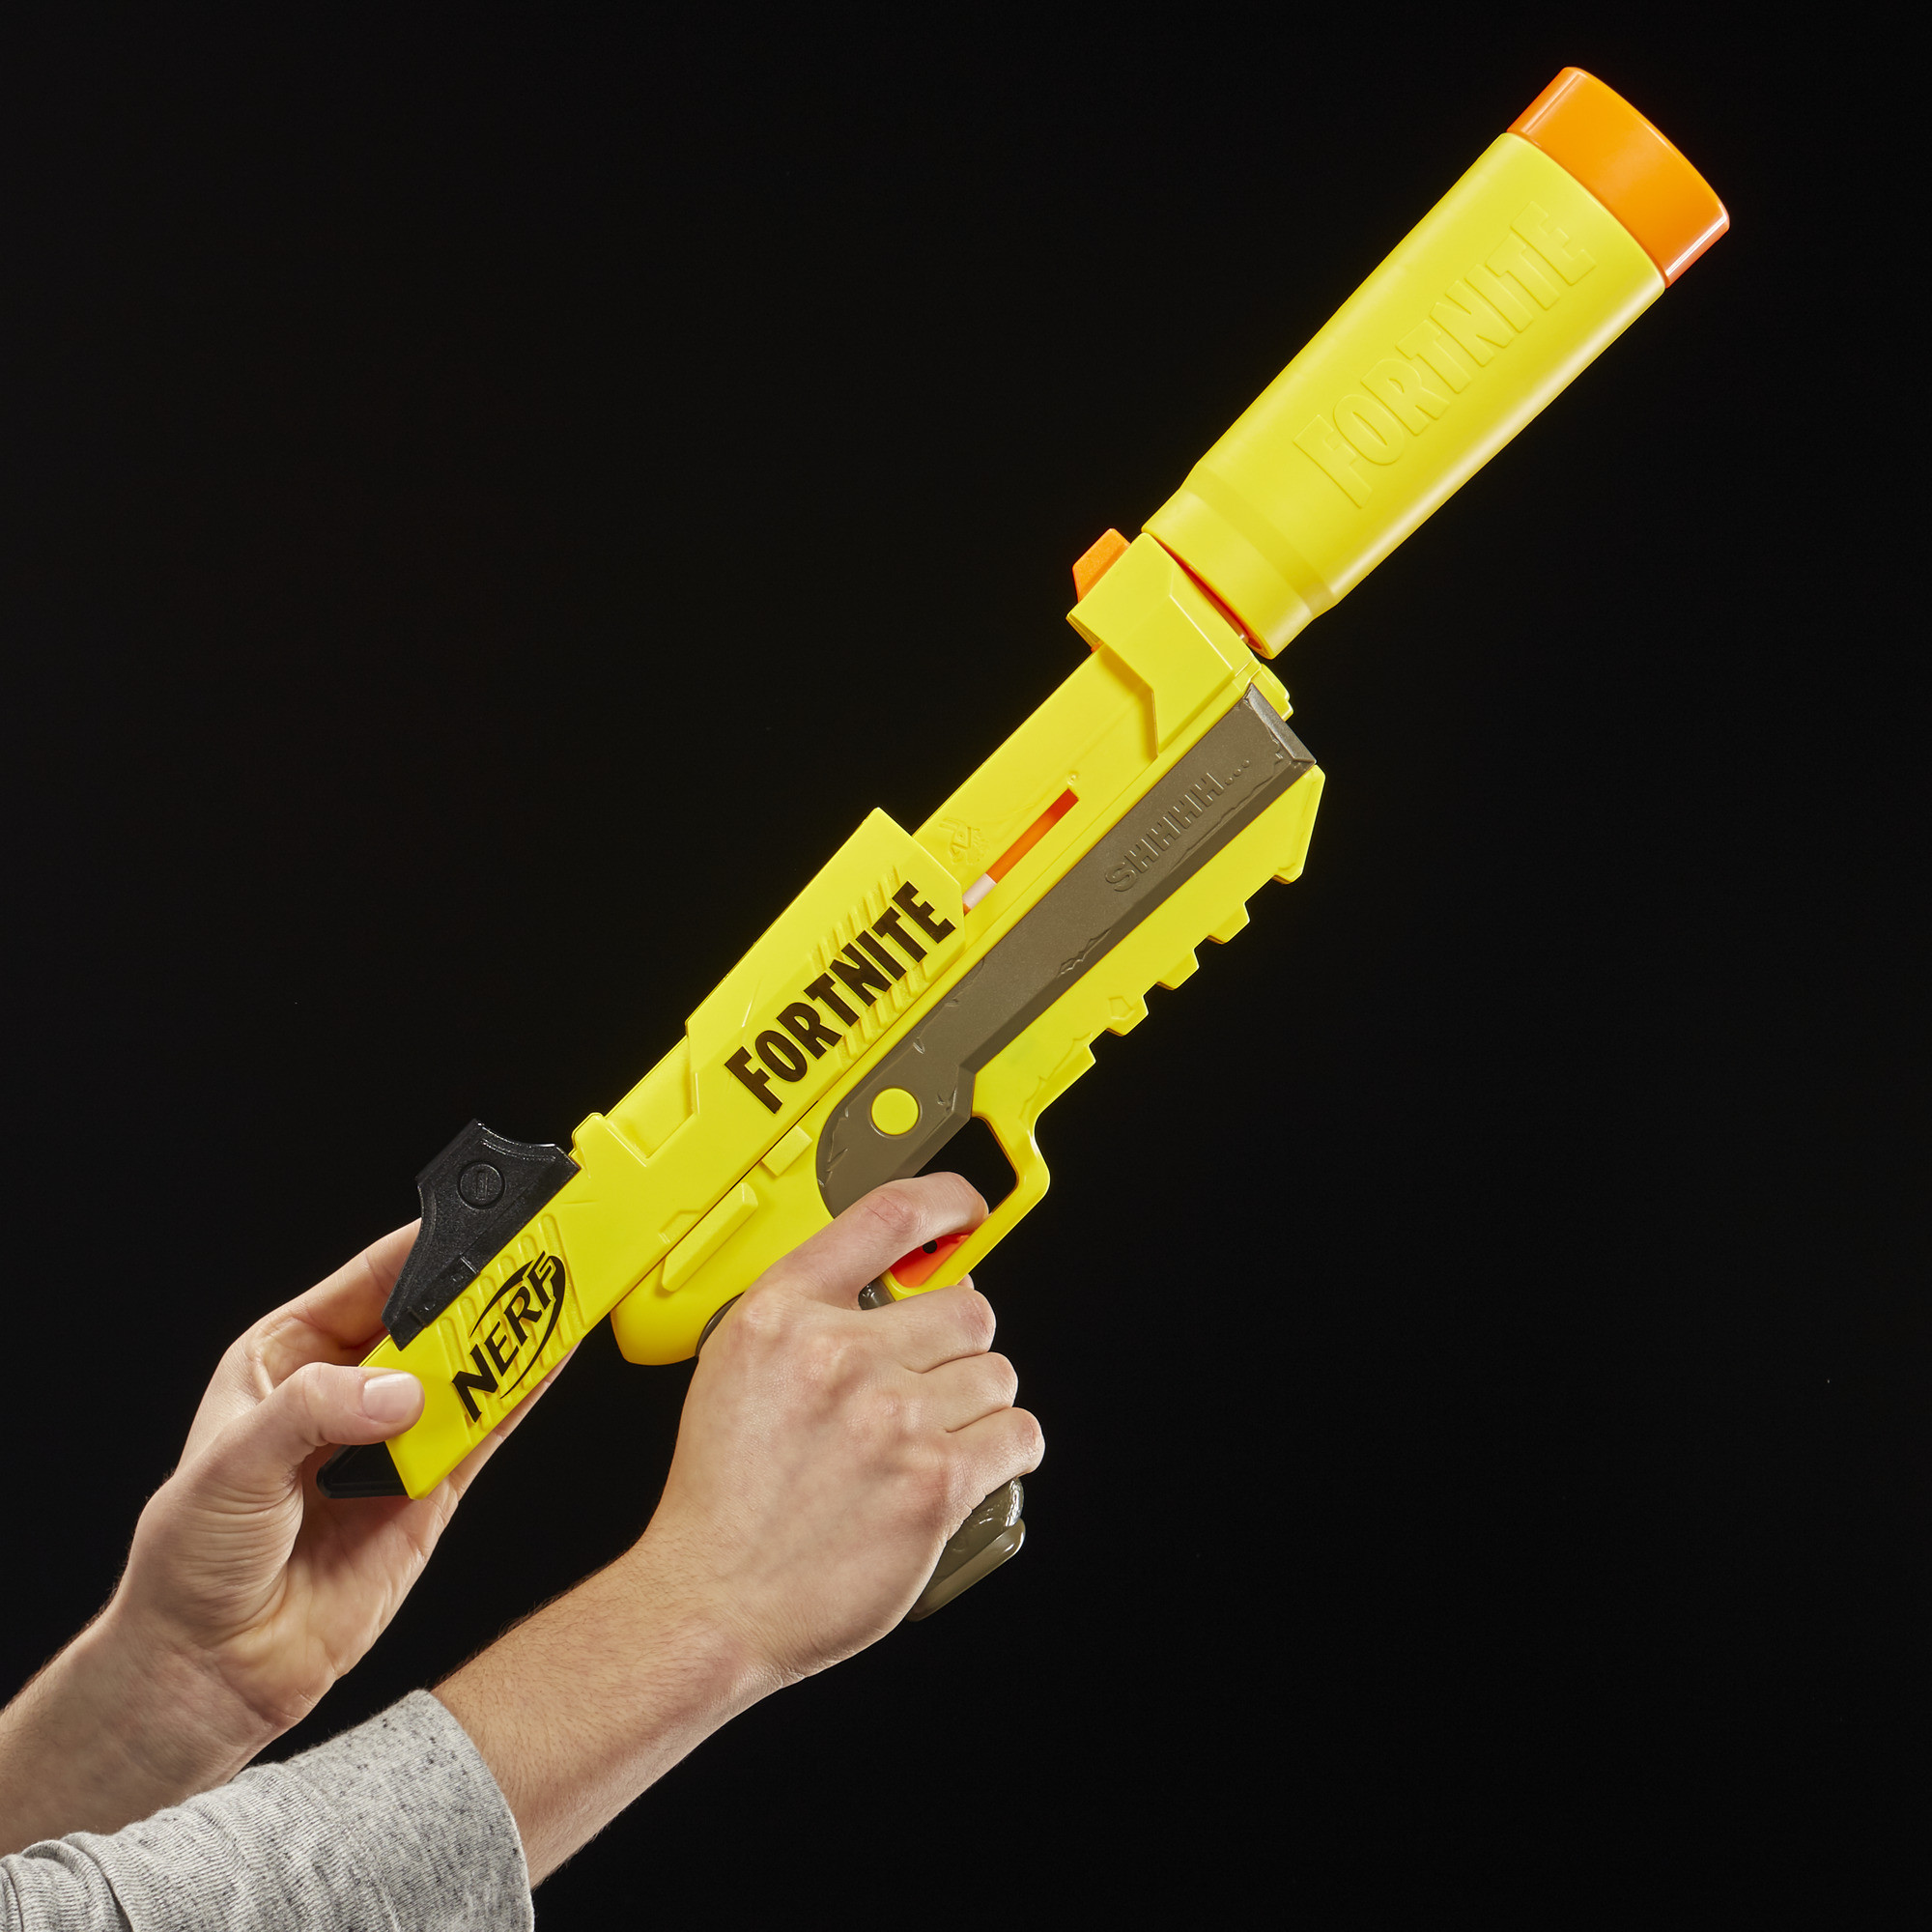 Nerf Fortnite Sp L Nerf Fortnite Nerf Toys Outdoor